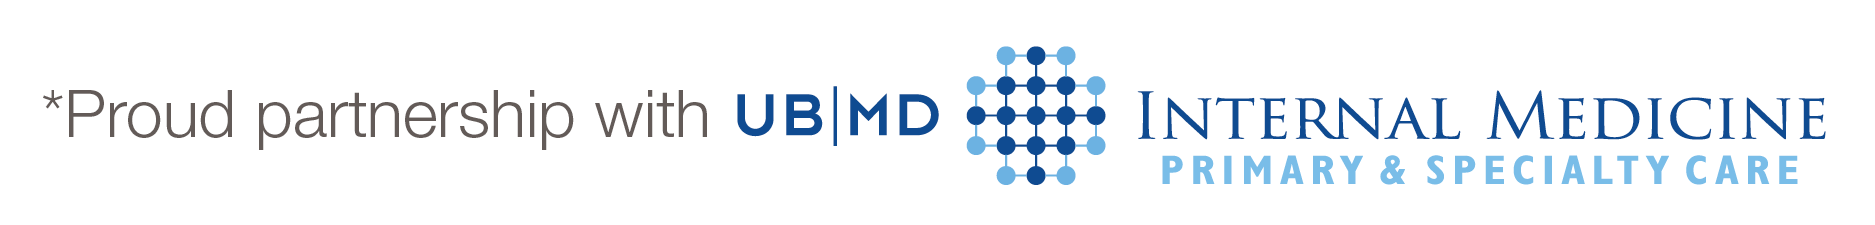 UBMD ProudPartnership Internal Medicine WEB